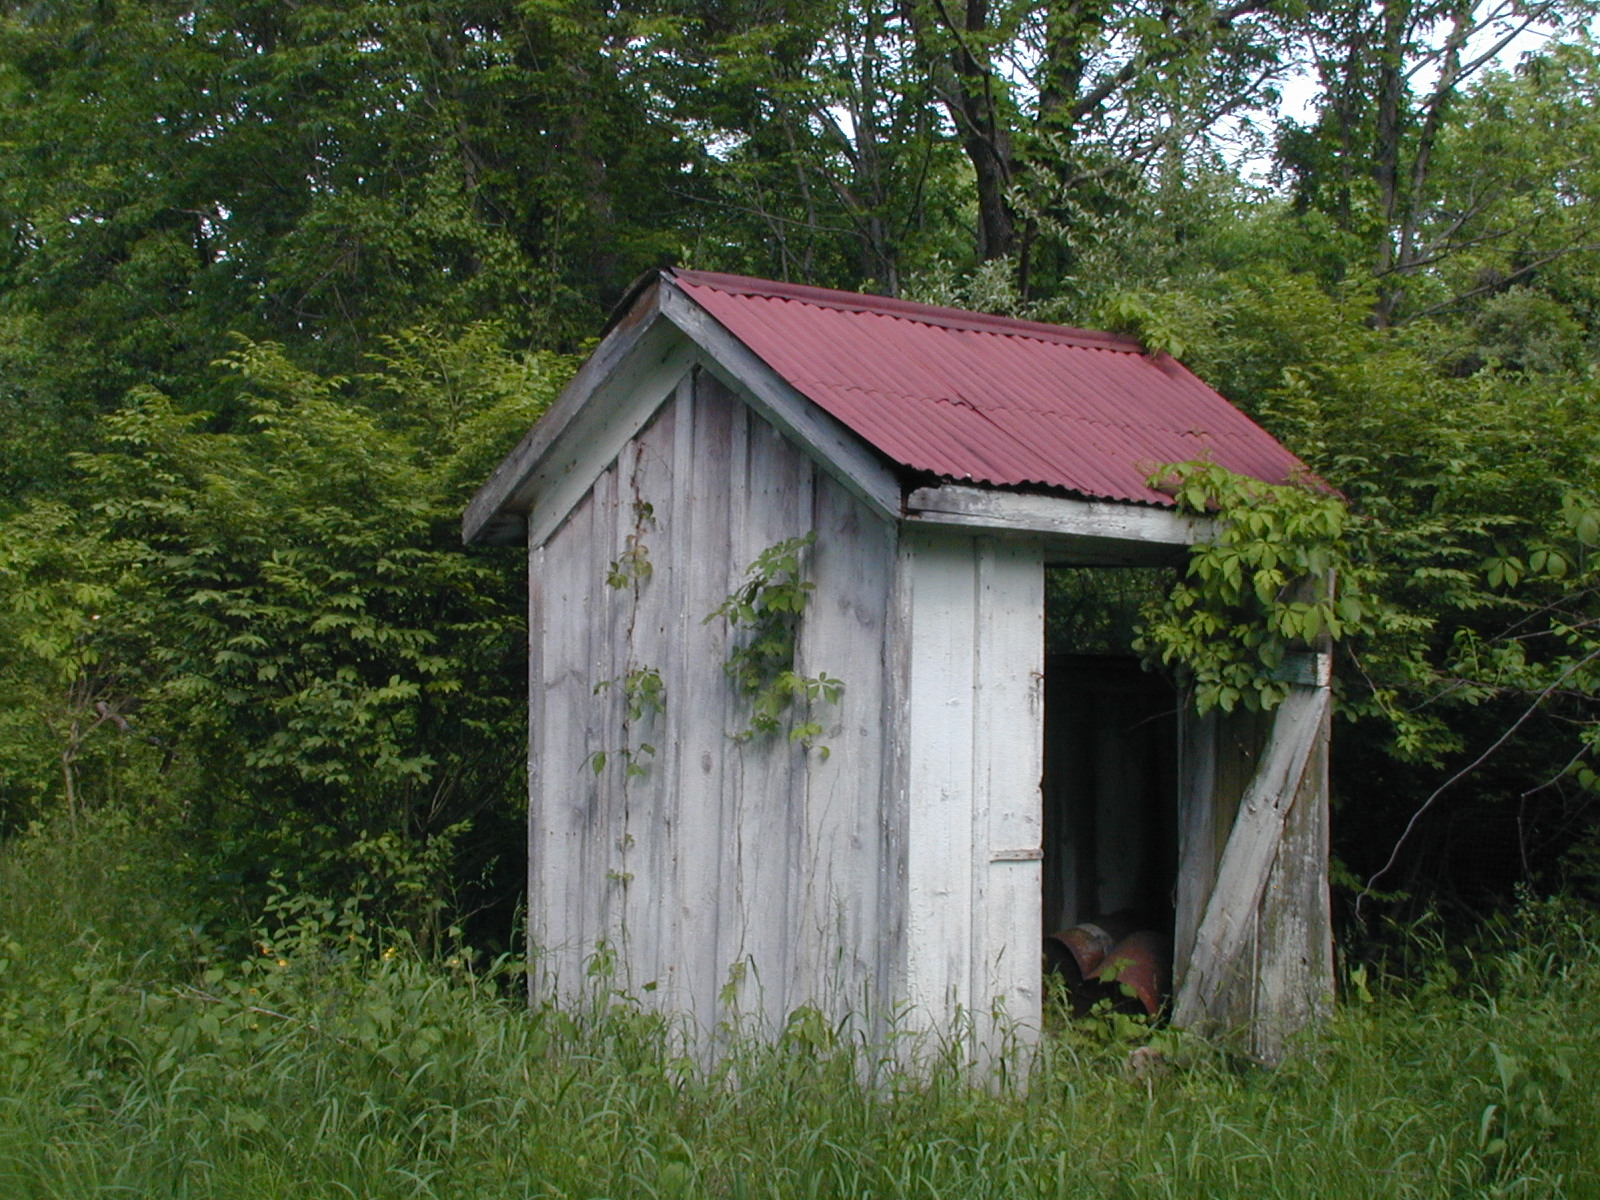 Second unknown house, shed